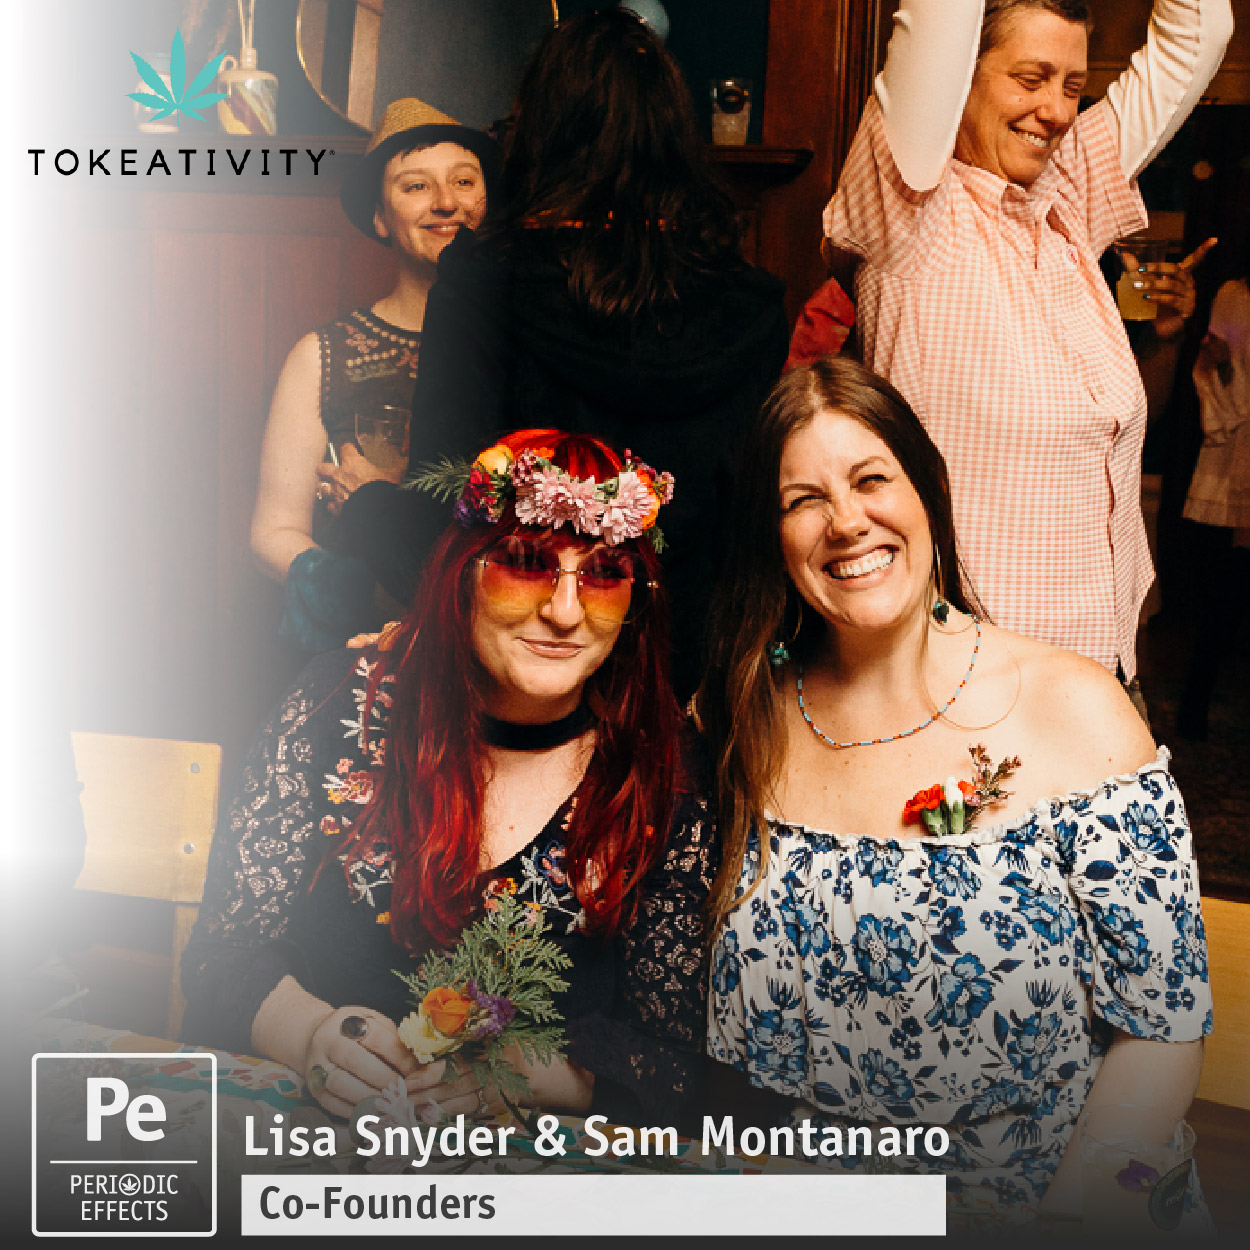 Lisa Snyder and Sam Montanaro Co-Founders of Tokeativity, a Global Cannabis Community for Women